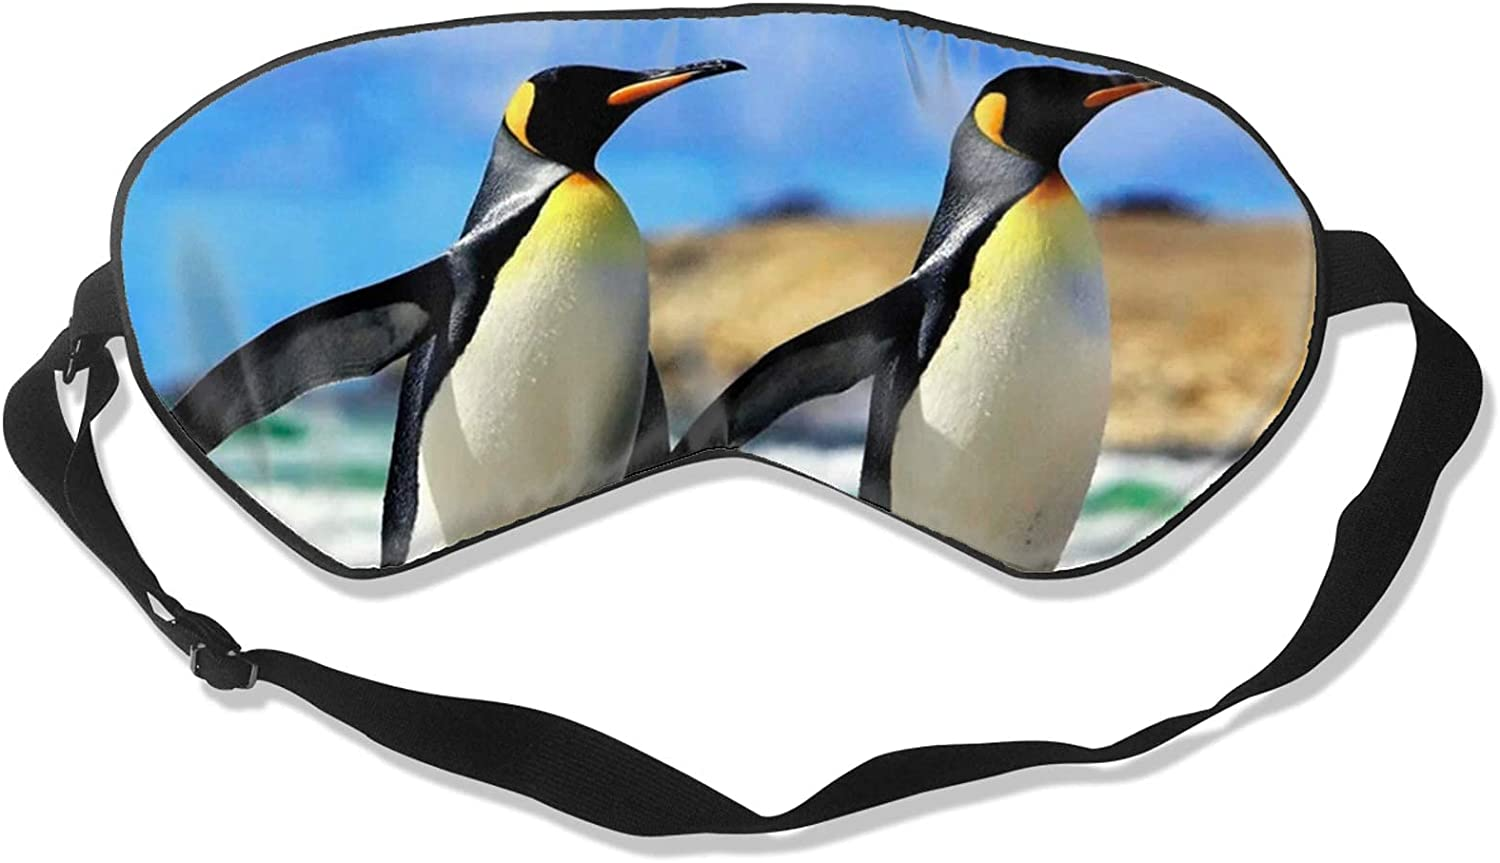 Cute Penguin Soft Sleeping Eye Block-Light Max 55% OFF Mask Challenge the lowest price Cover Sleep